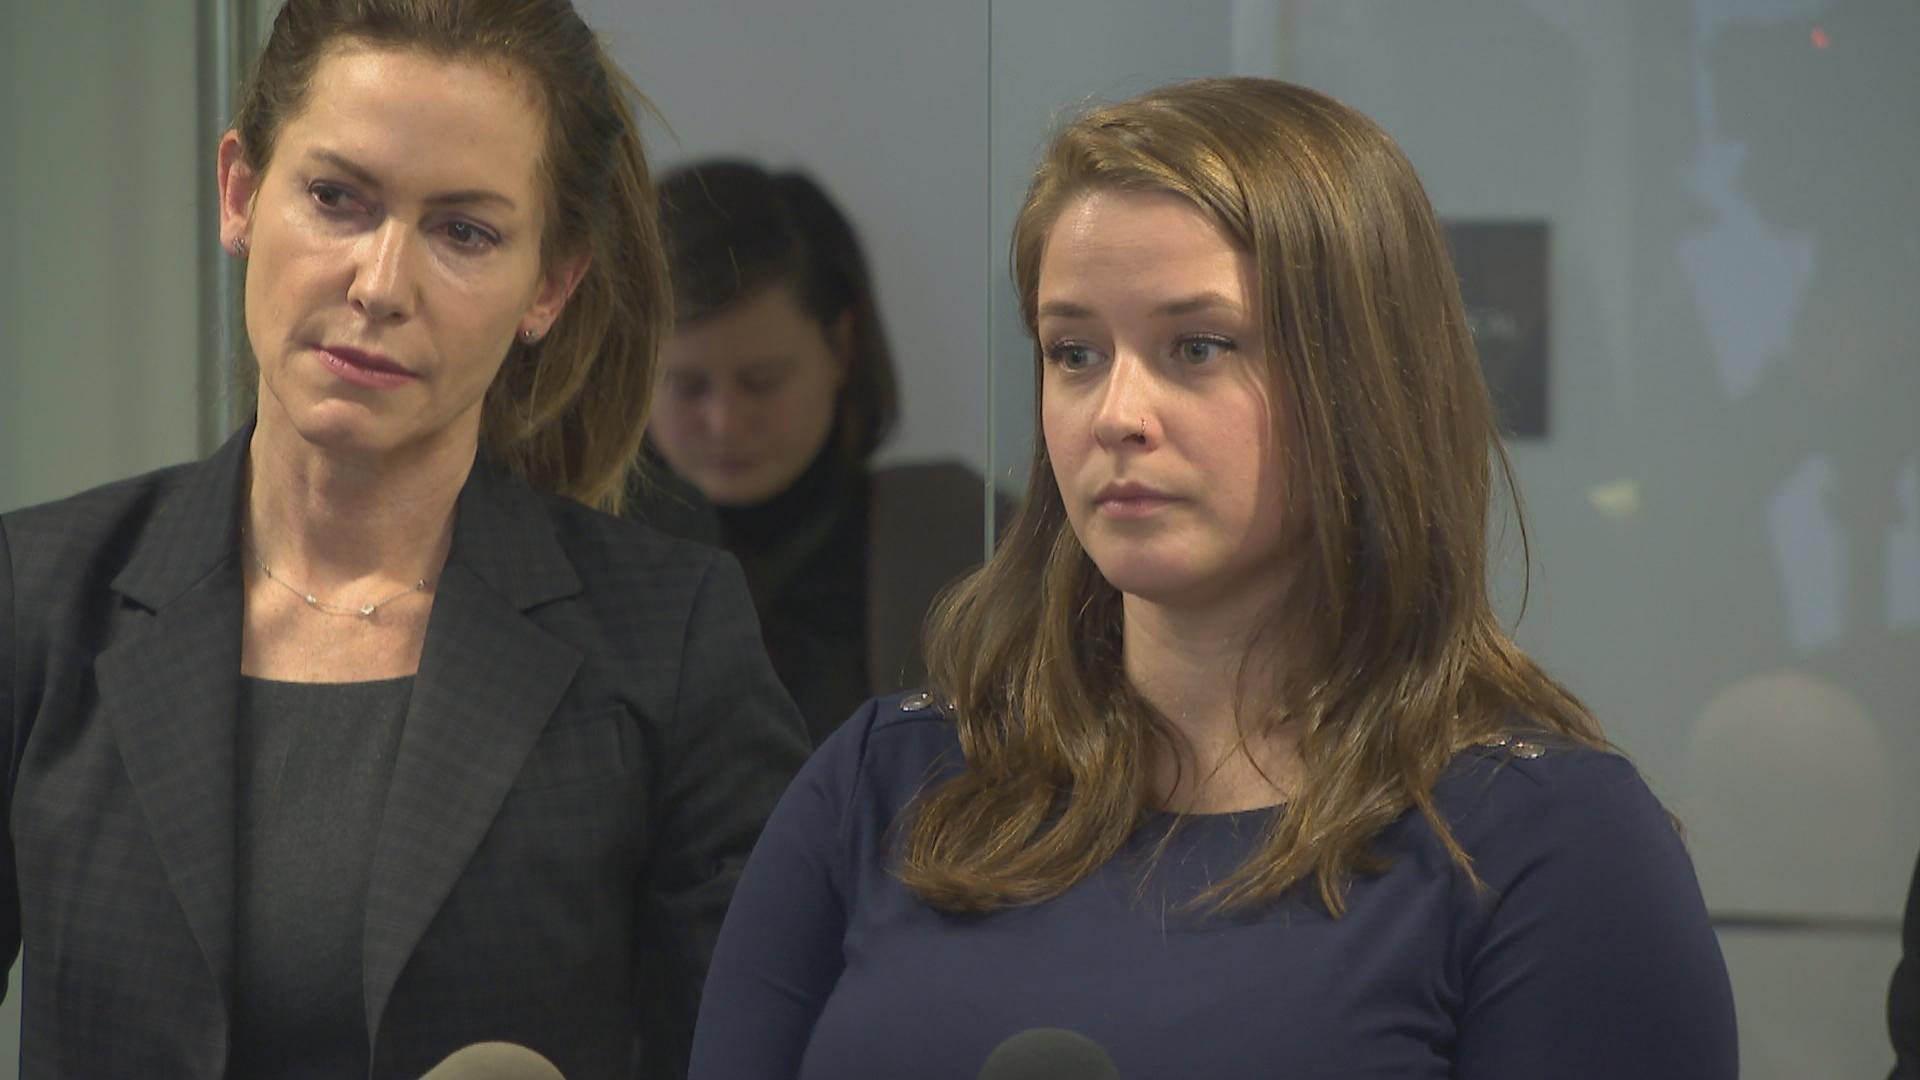 Alaina Hampton, right, speaks to the media Feb. 13, 2018 with her spokesperson Lorna Brett.